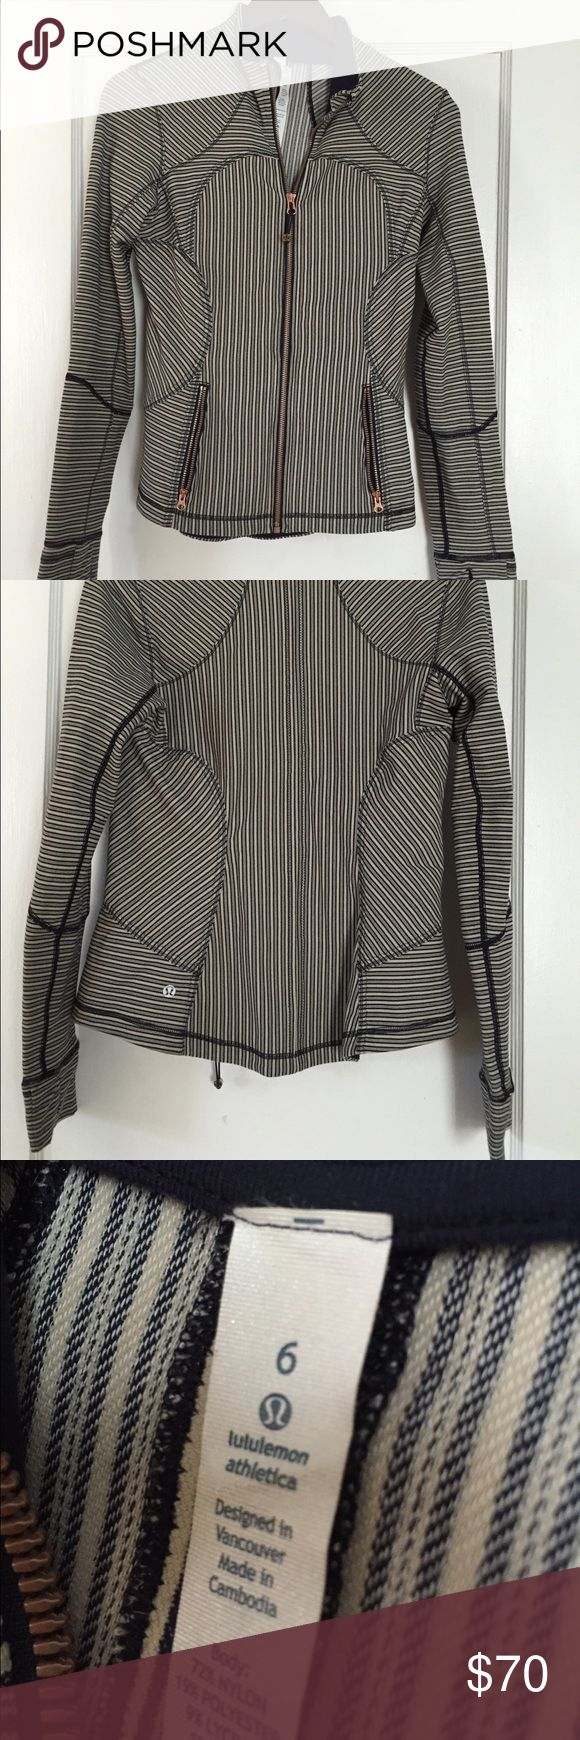 Lululemon size 6 blue and white zip-up jacket Lululemon size 6 zip up jacket : blue and white stripe, perfect condition! This jacket has thumb holes and a rose gold zipper. Comfy stretchy fit and not a super thick material! lululemon athletica Tops Sweatshirts & Hoodies